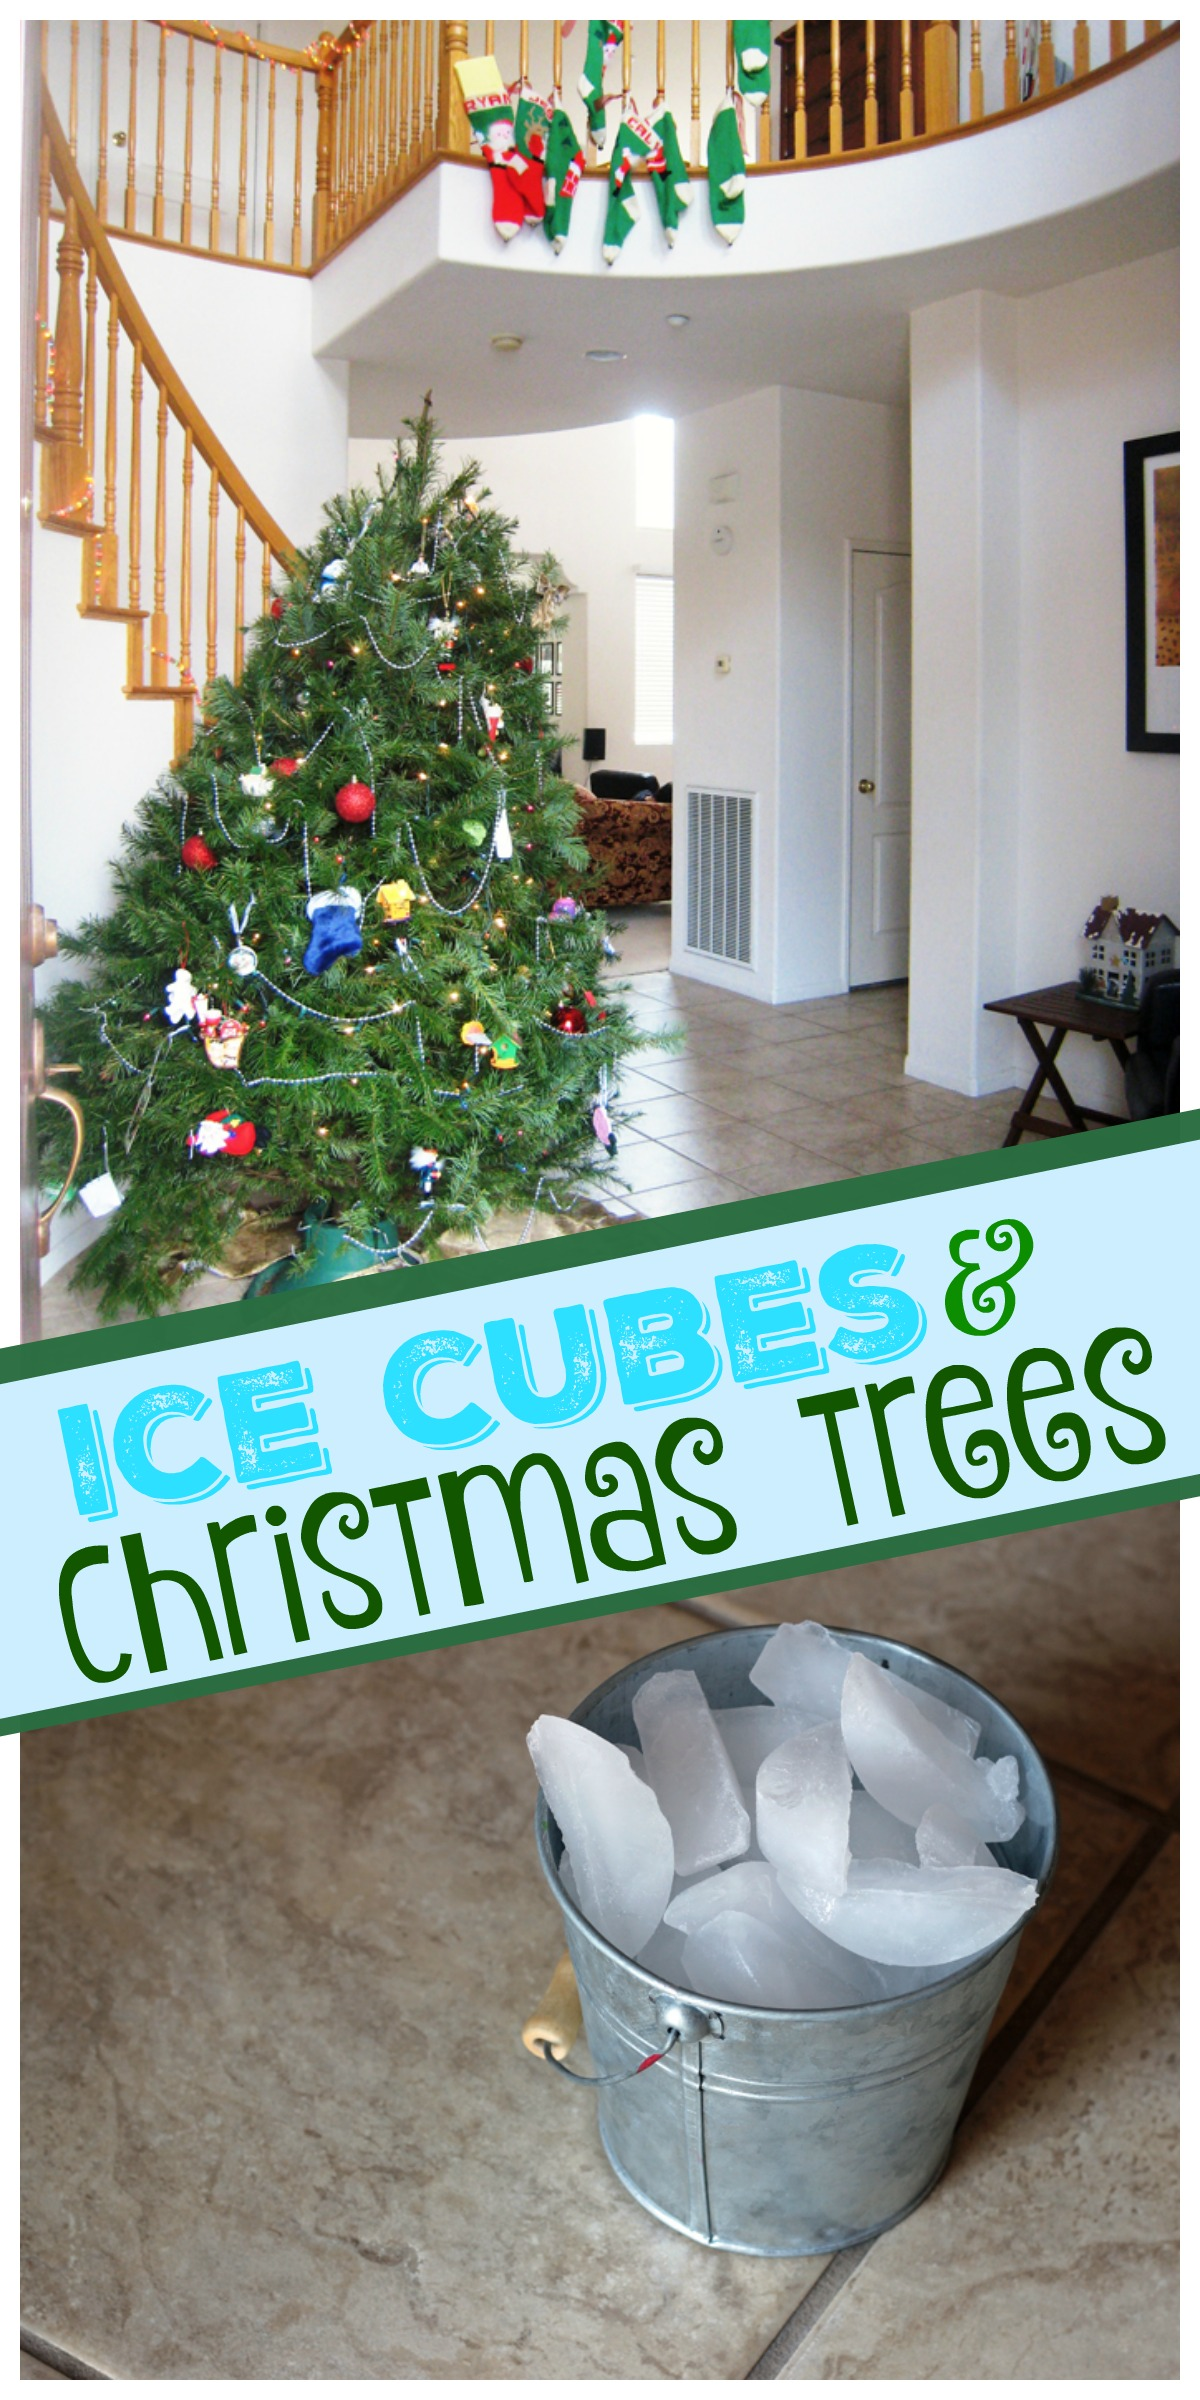 Ice Cubes Christmas Trees PIN